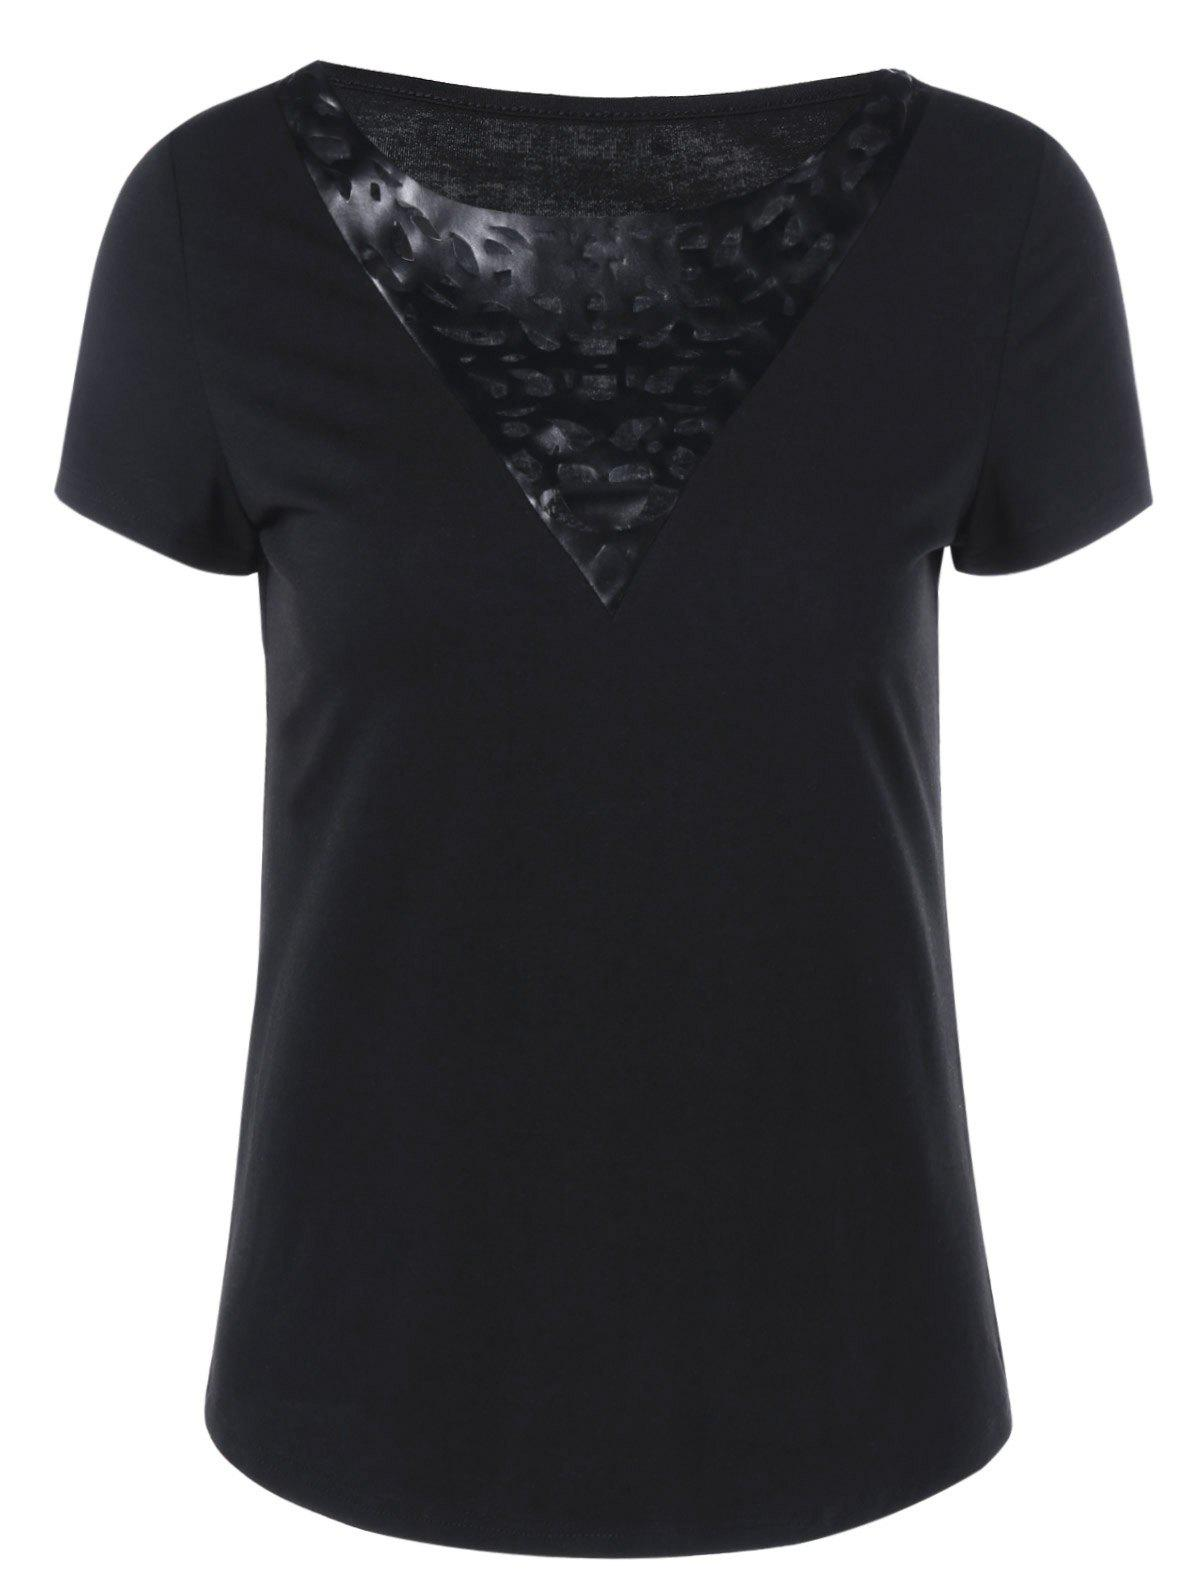 Online PU Leather Trim Hollow Out T-Shirt